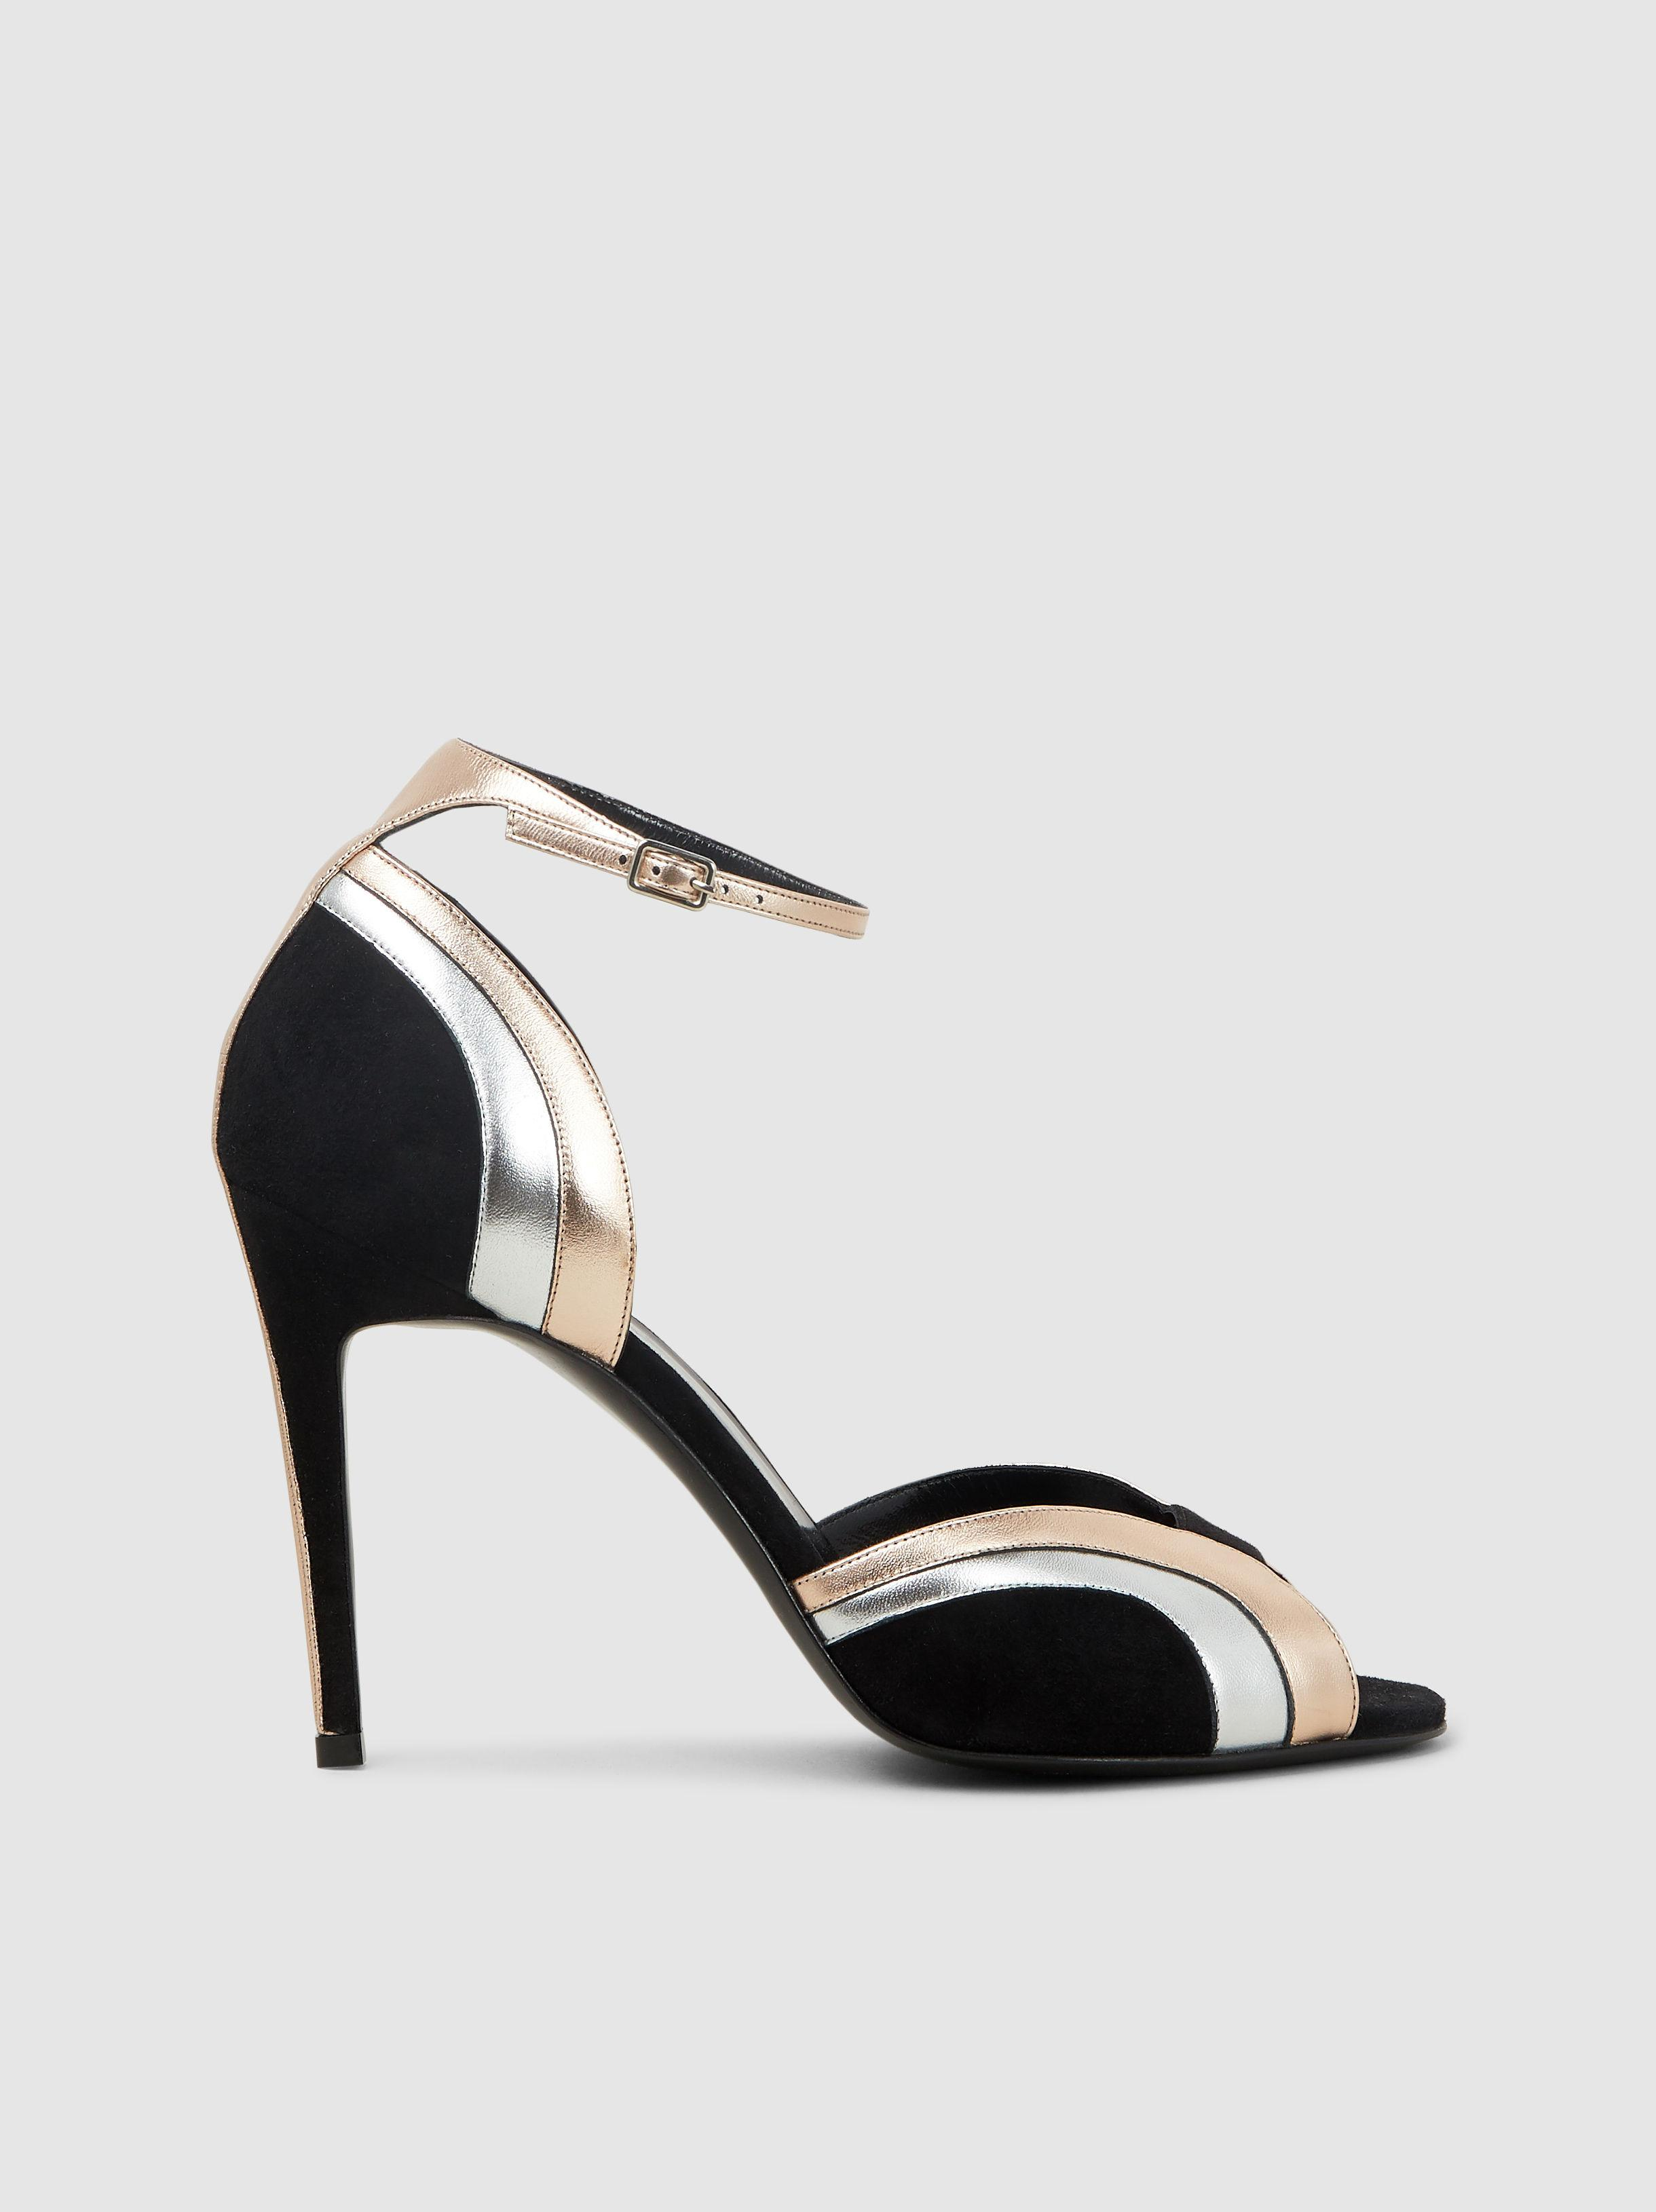 f96881a1325115 Pierre Hardy Rainbow Metallic Suede Sandals in Black - Lyst